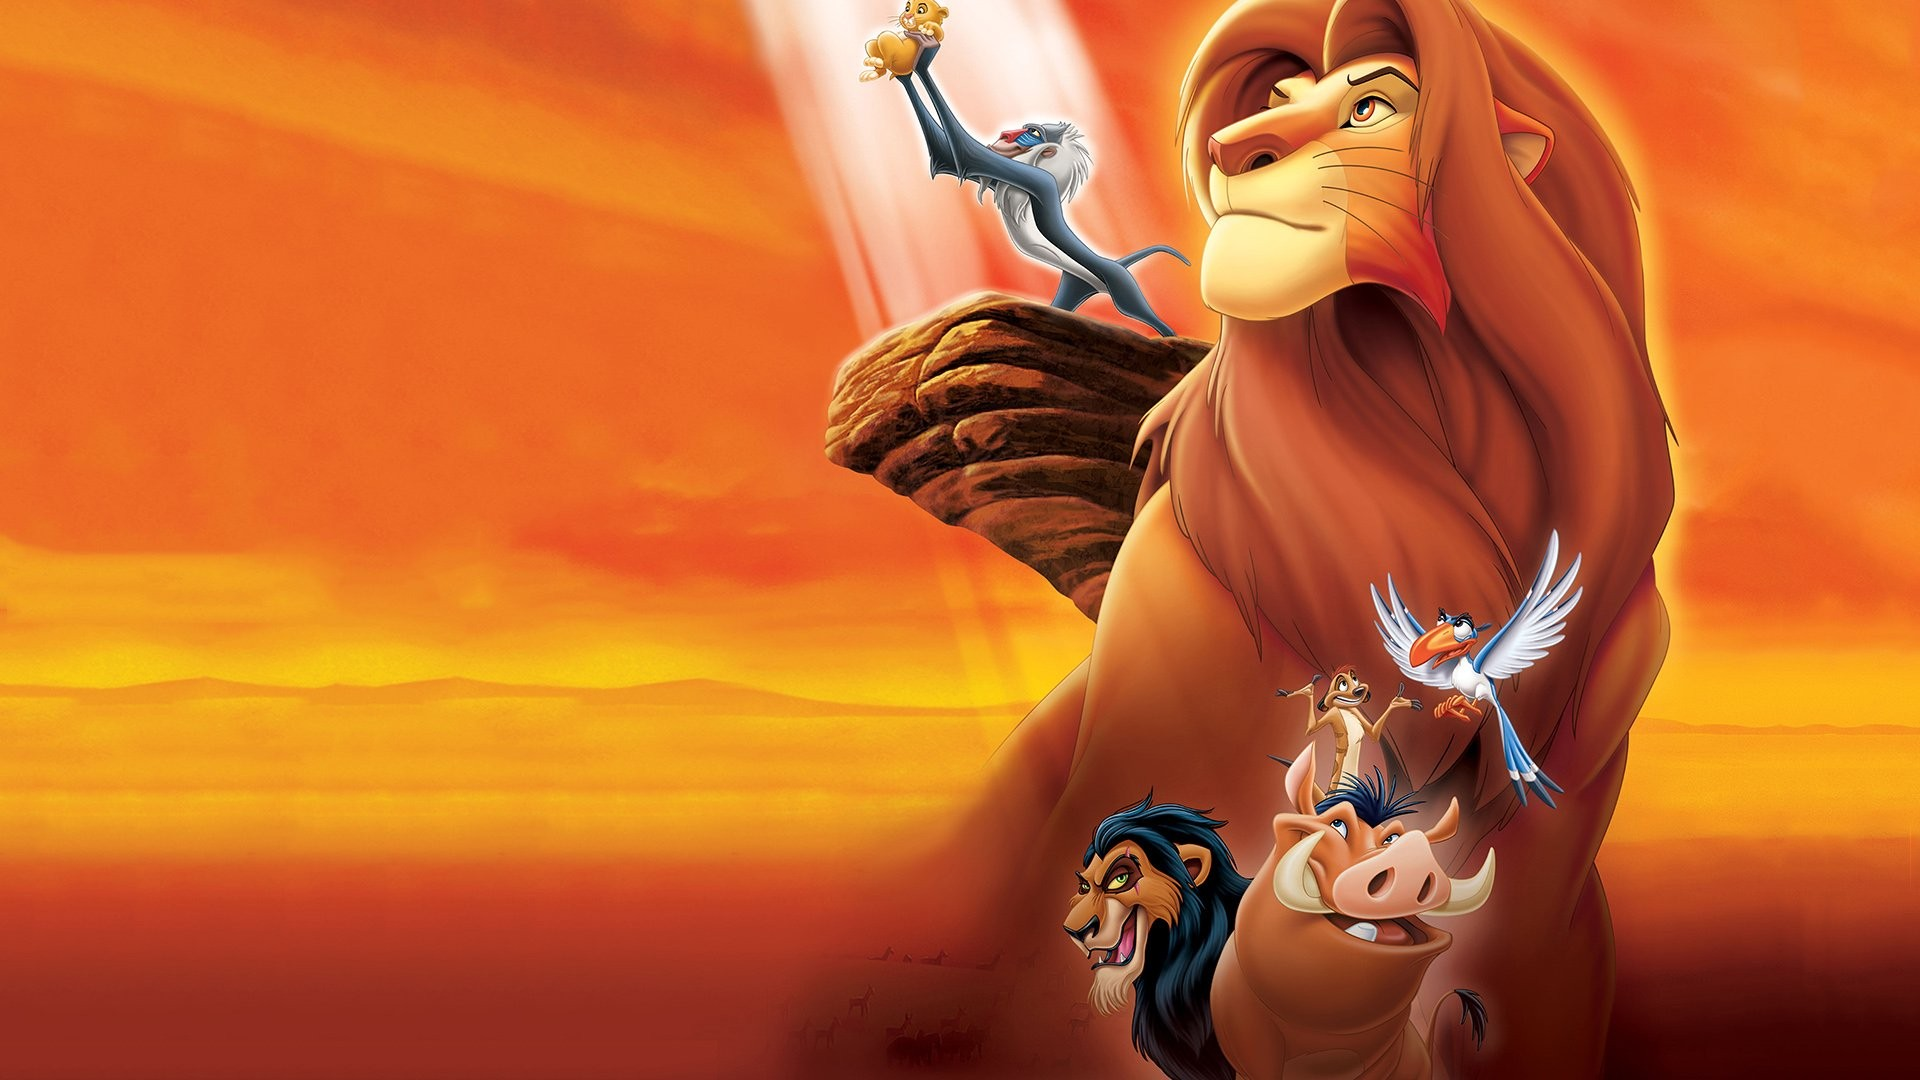 the lion king 1994 full movie download free